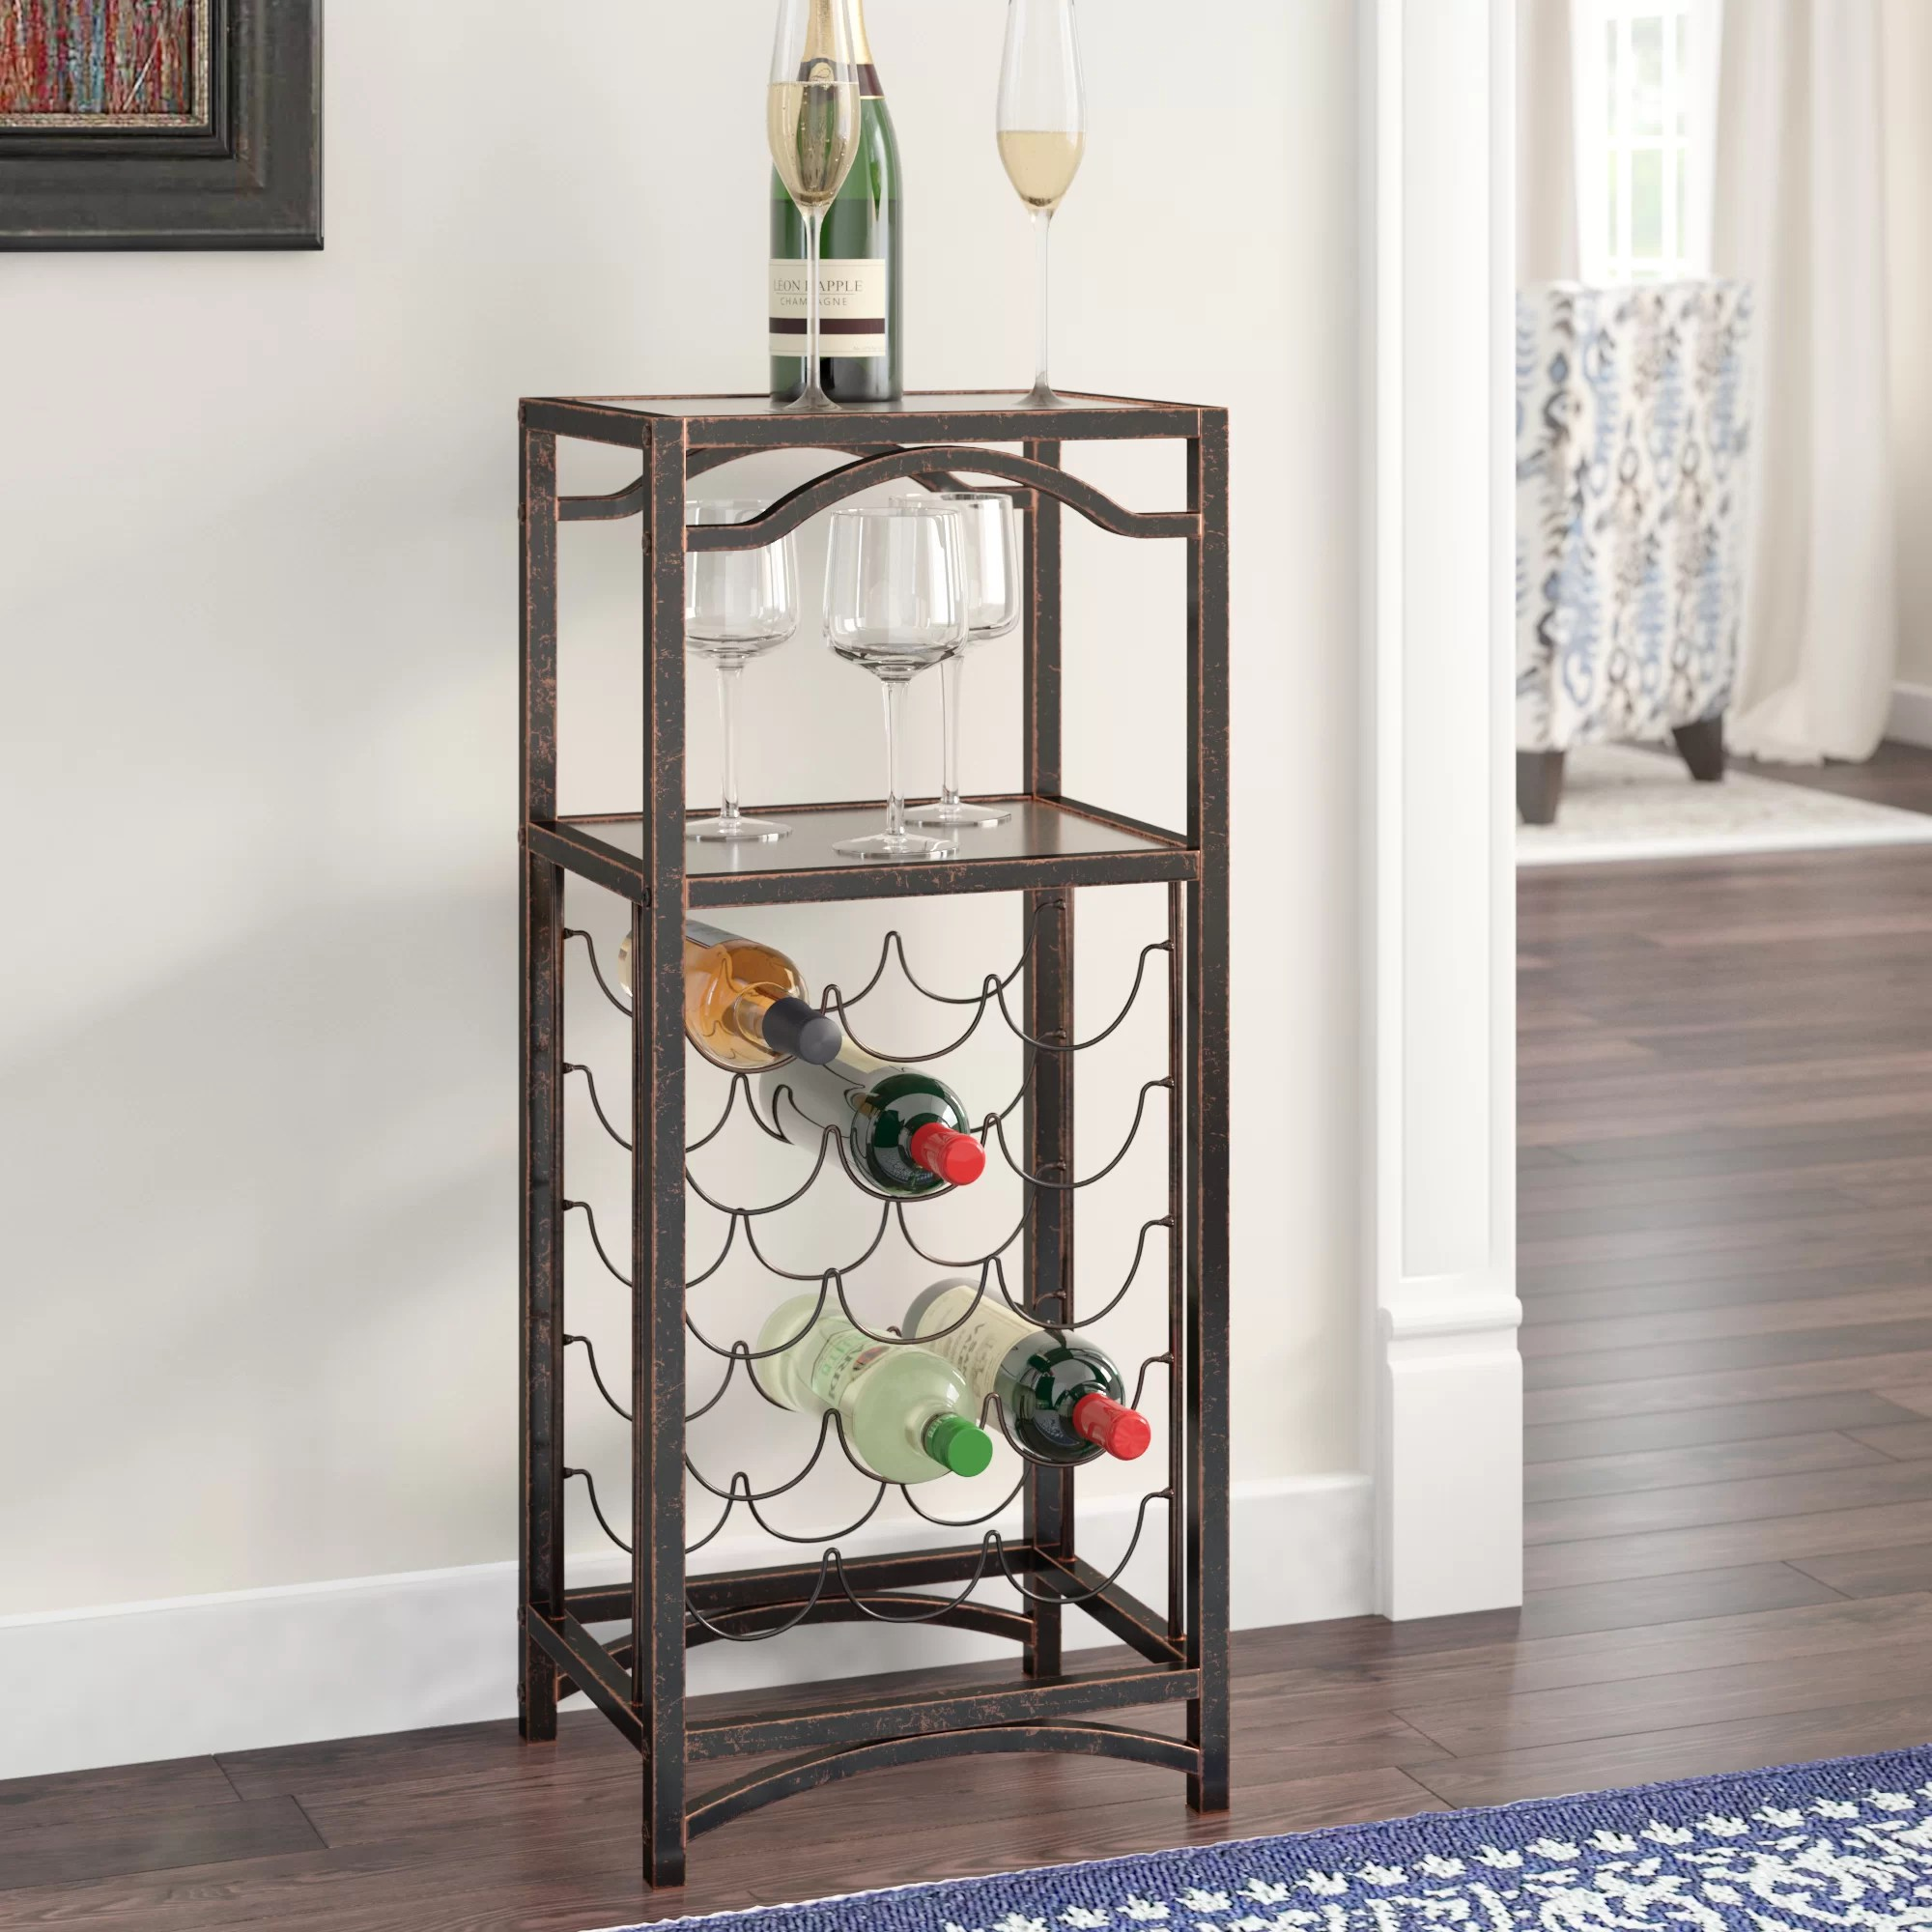 Metal Wine Storage Racks Floyd Metal Storage 15 Bottle Floor Wine Bottle Rack